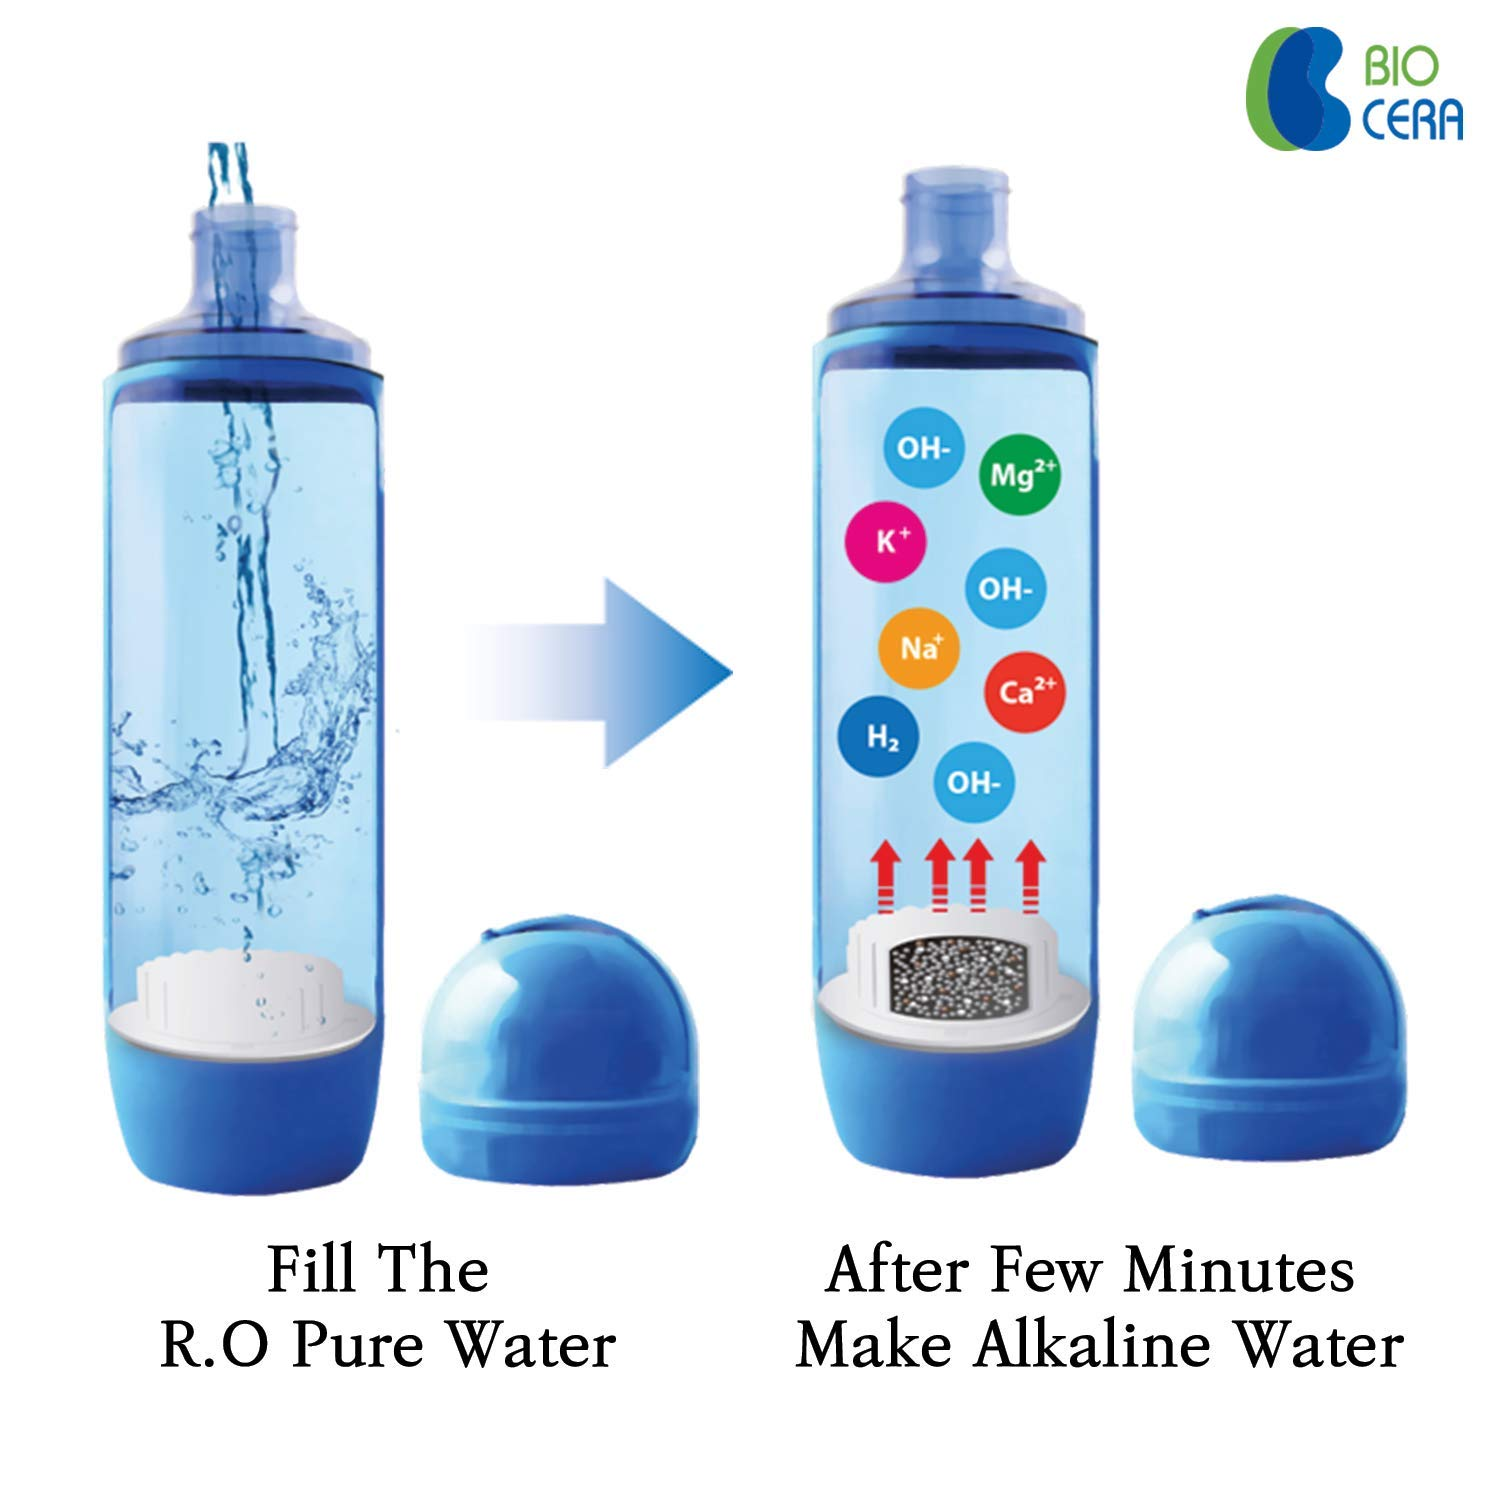 AHA Water Bottle Replacement Filter by Biocera